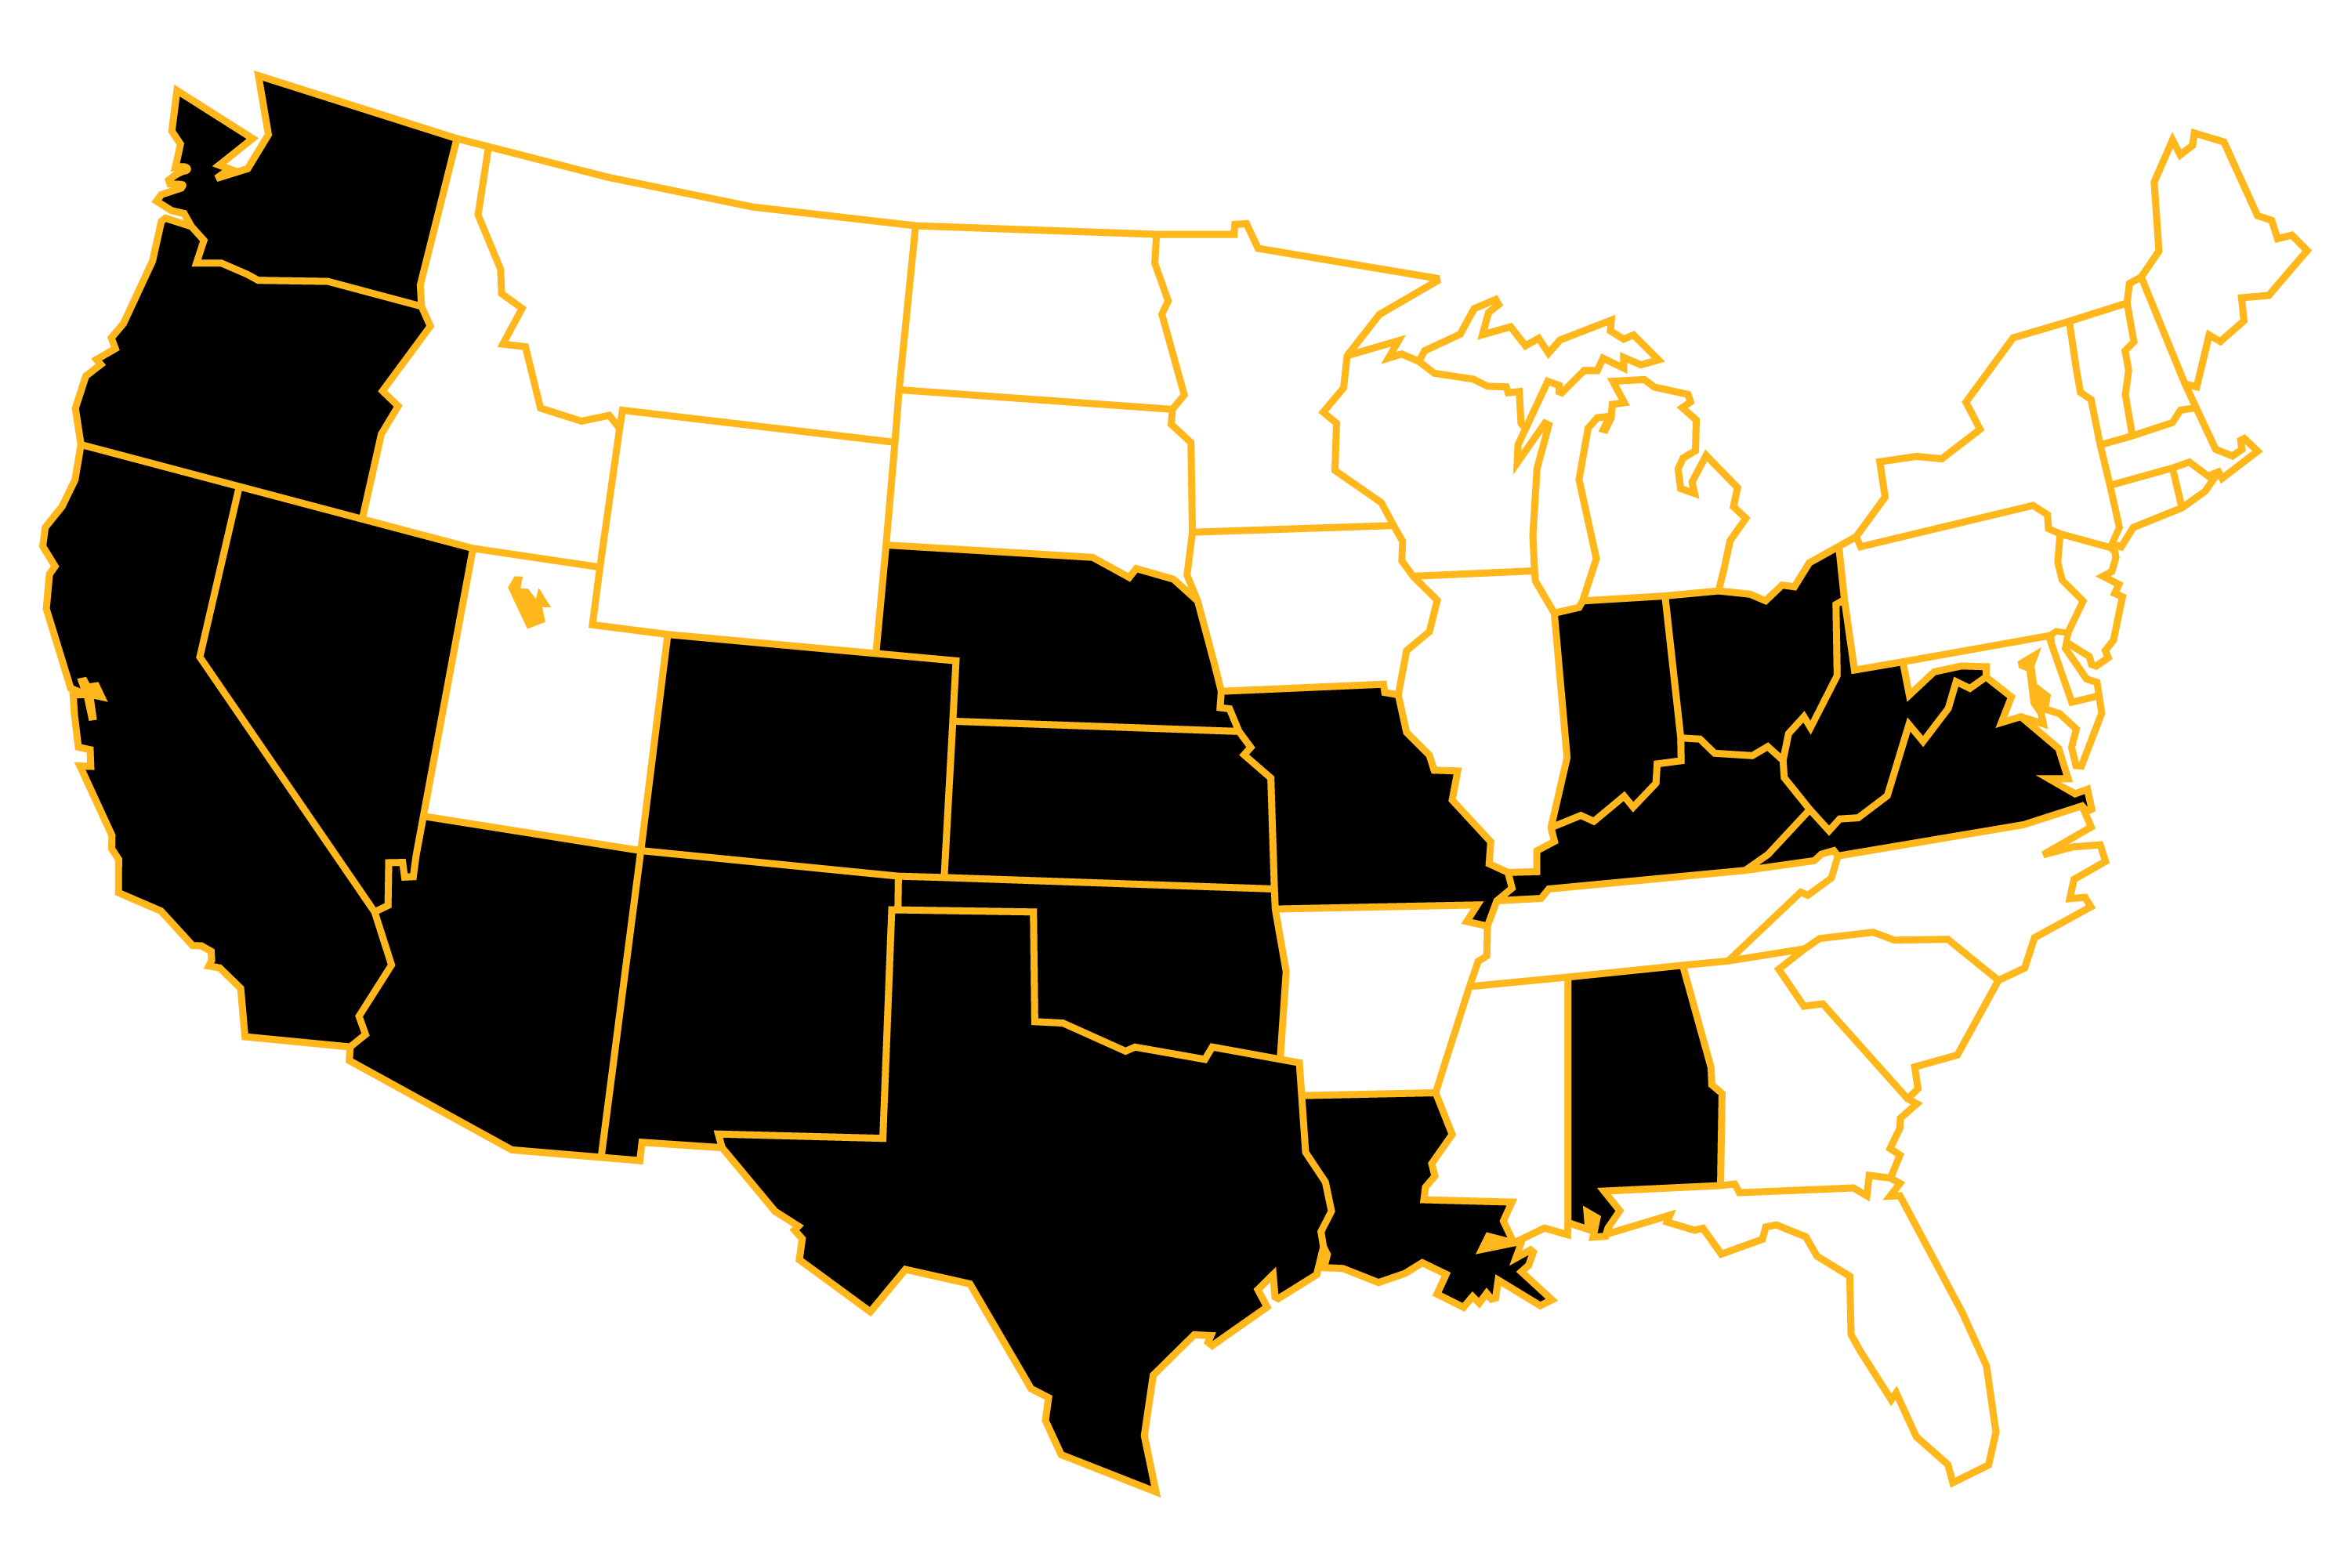 A map of the United States. The states where PGCC has projects are shown in black.